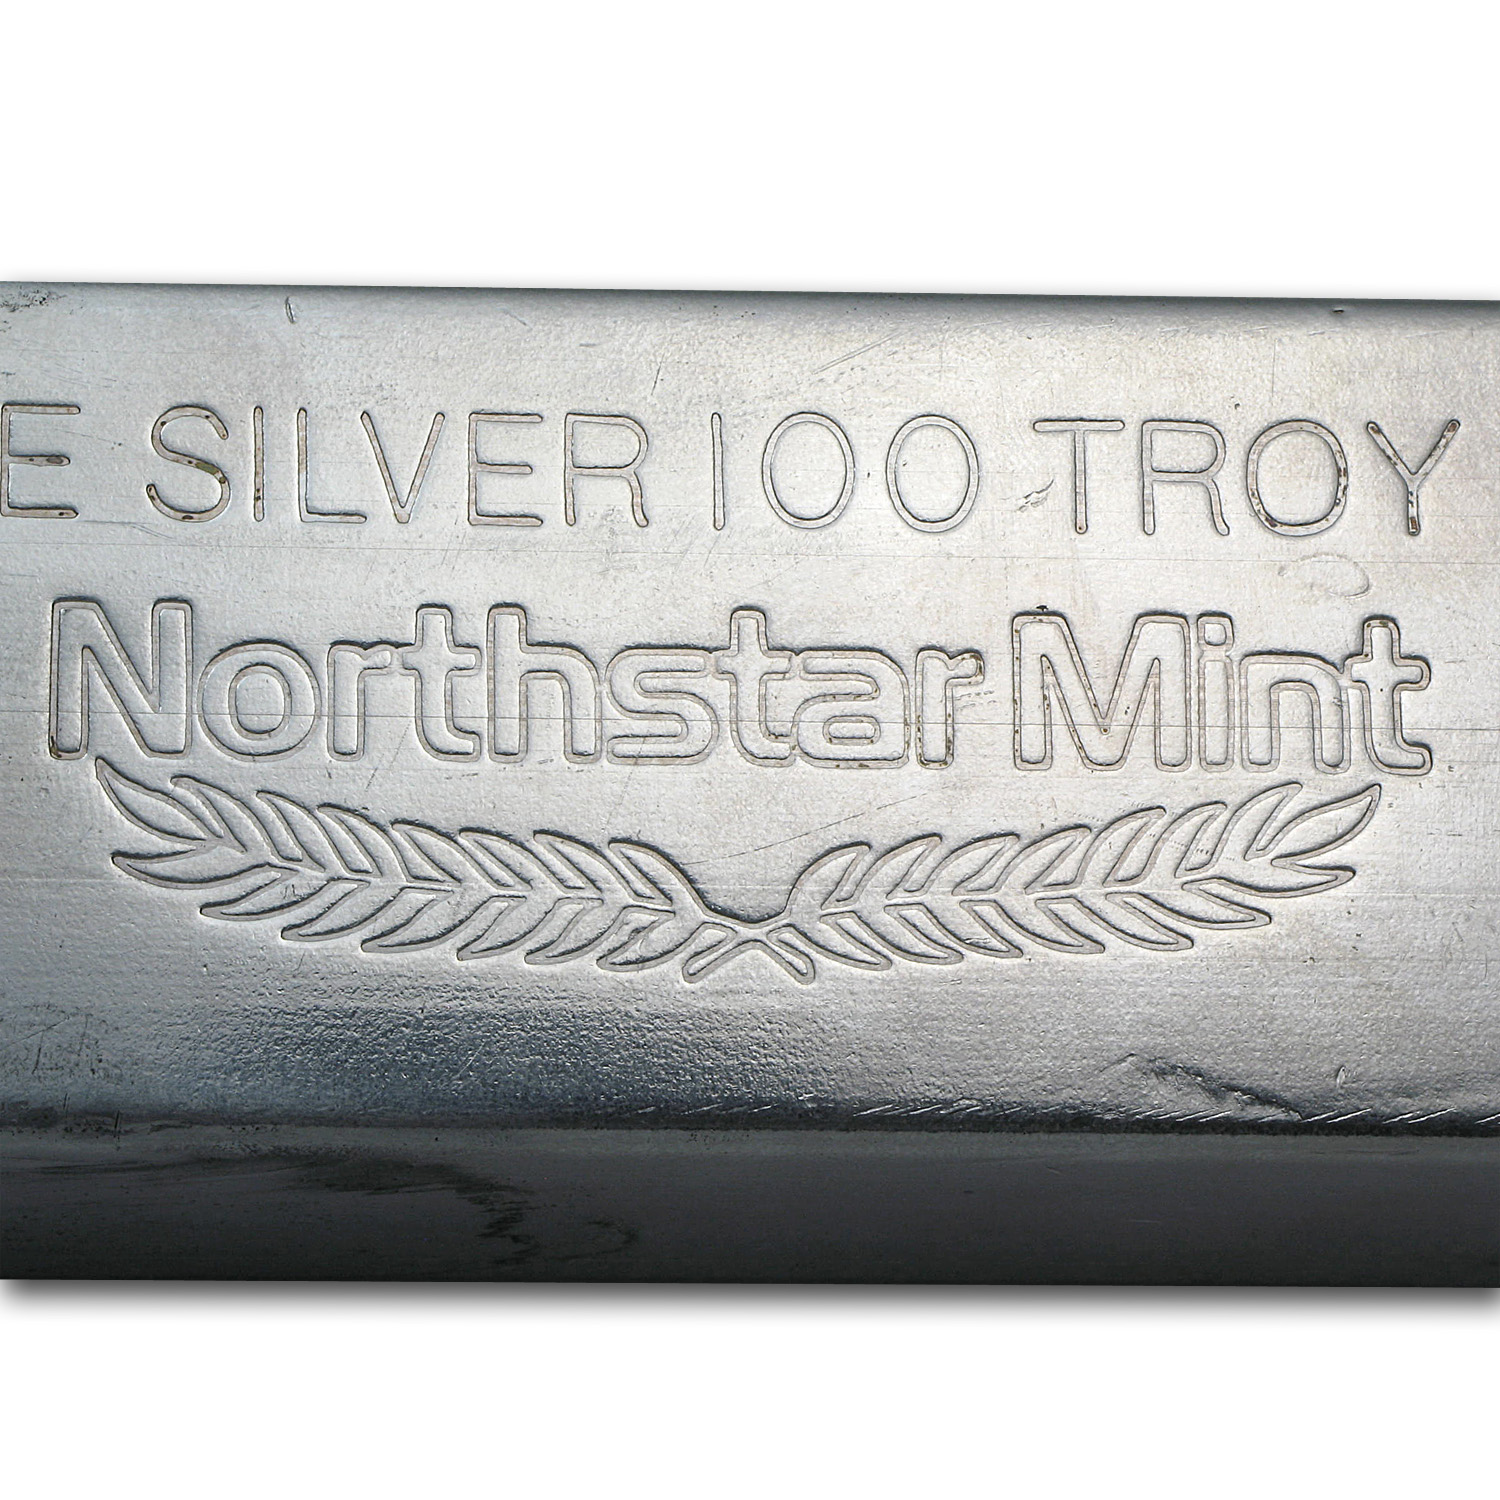 100 oz Silver Bar - Northstar Mint